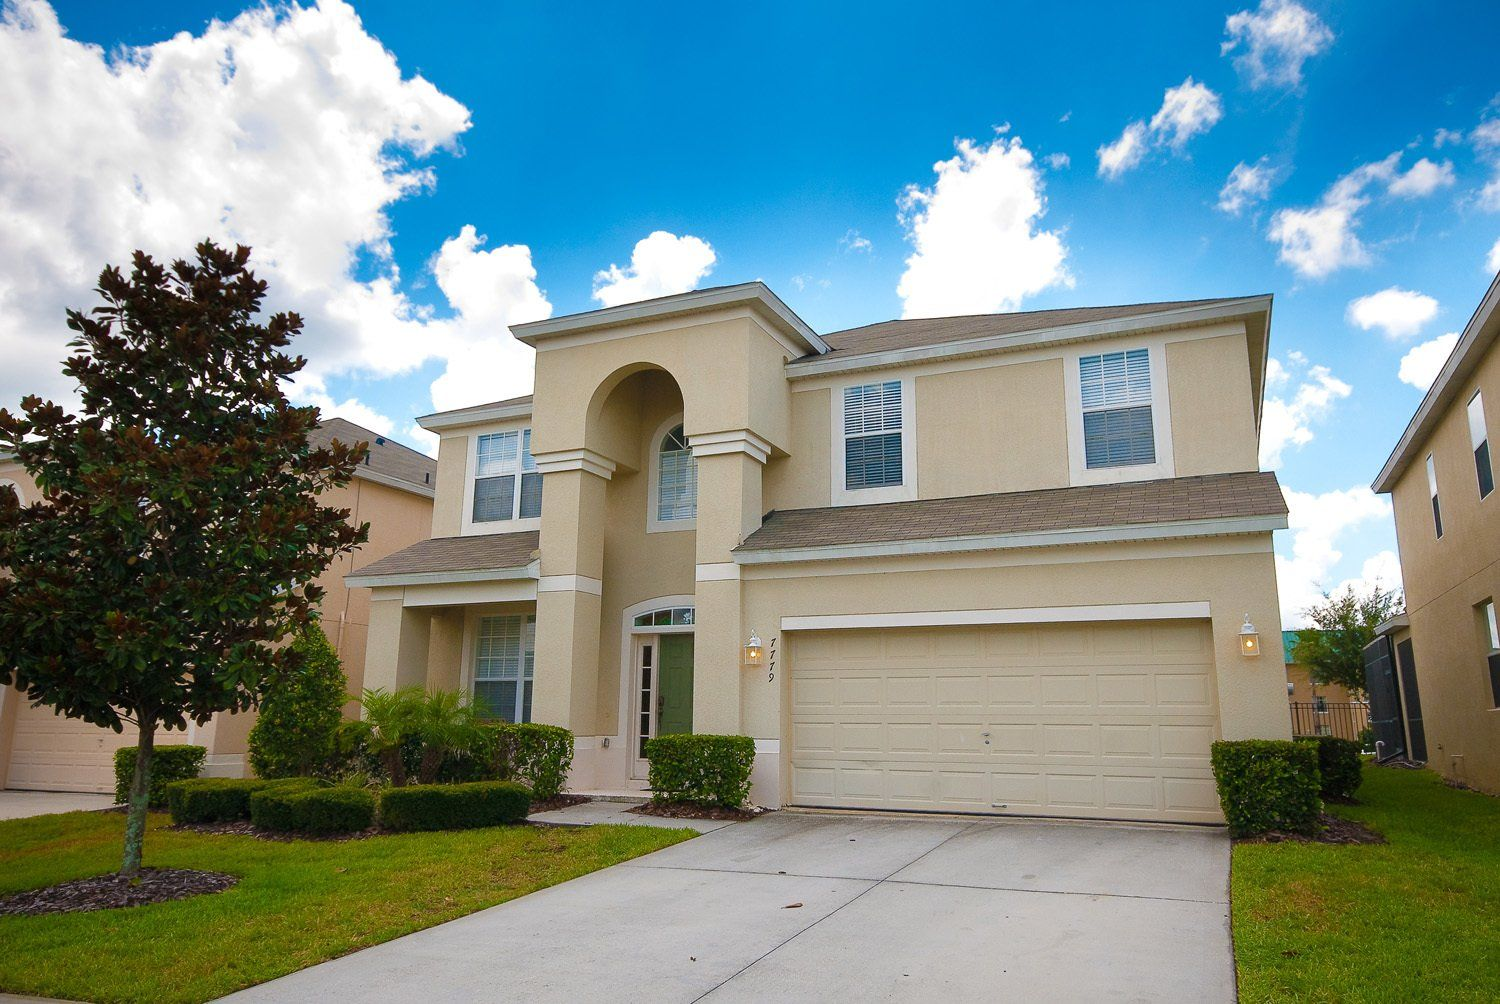 Home in Orlando is very popular because of it wonderful